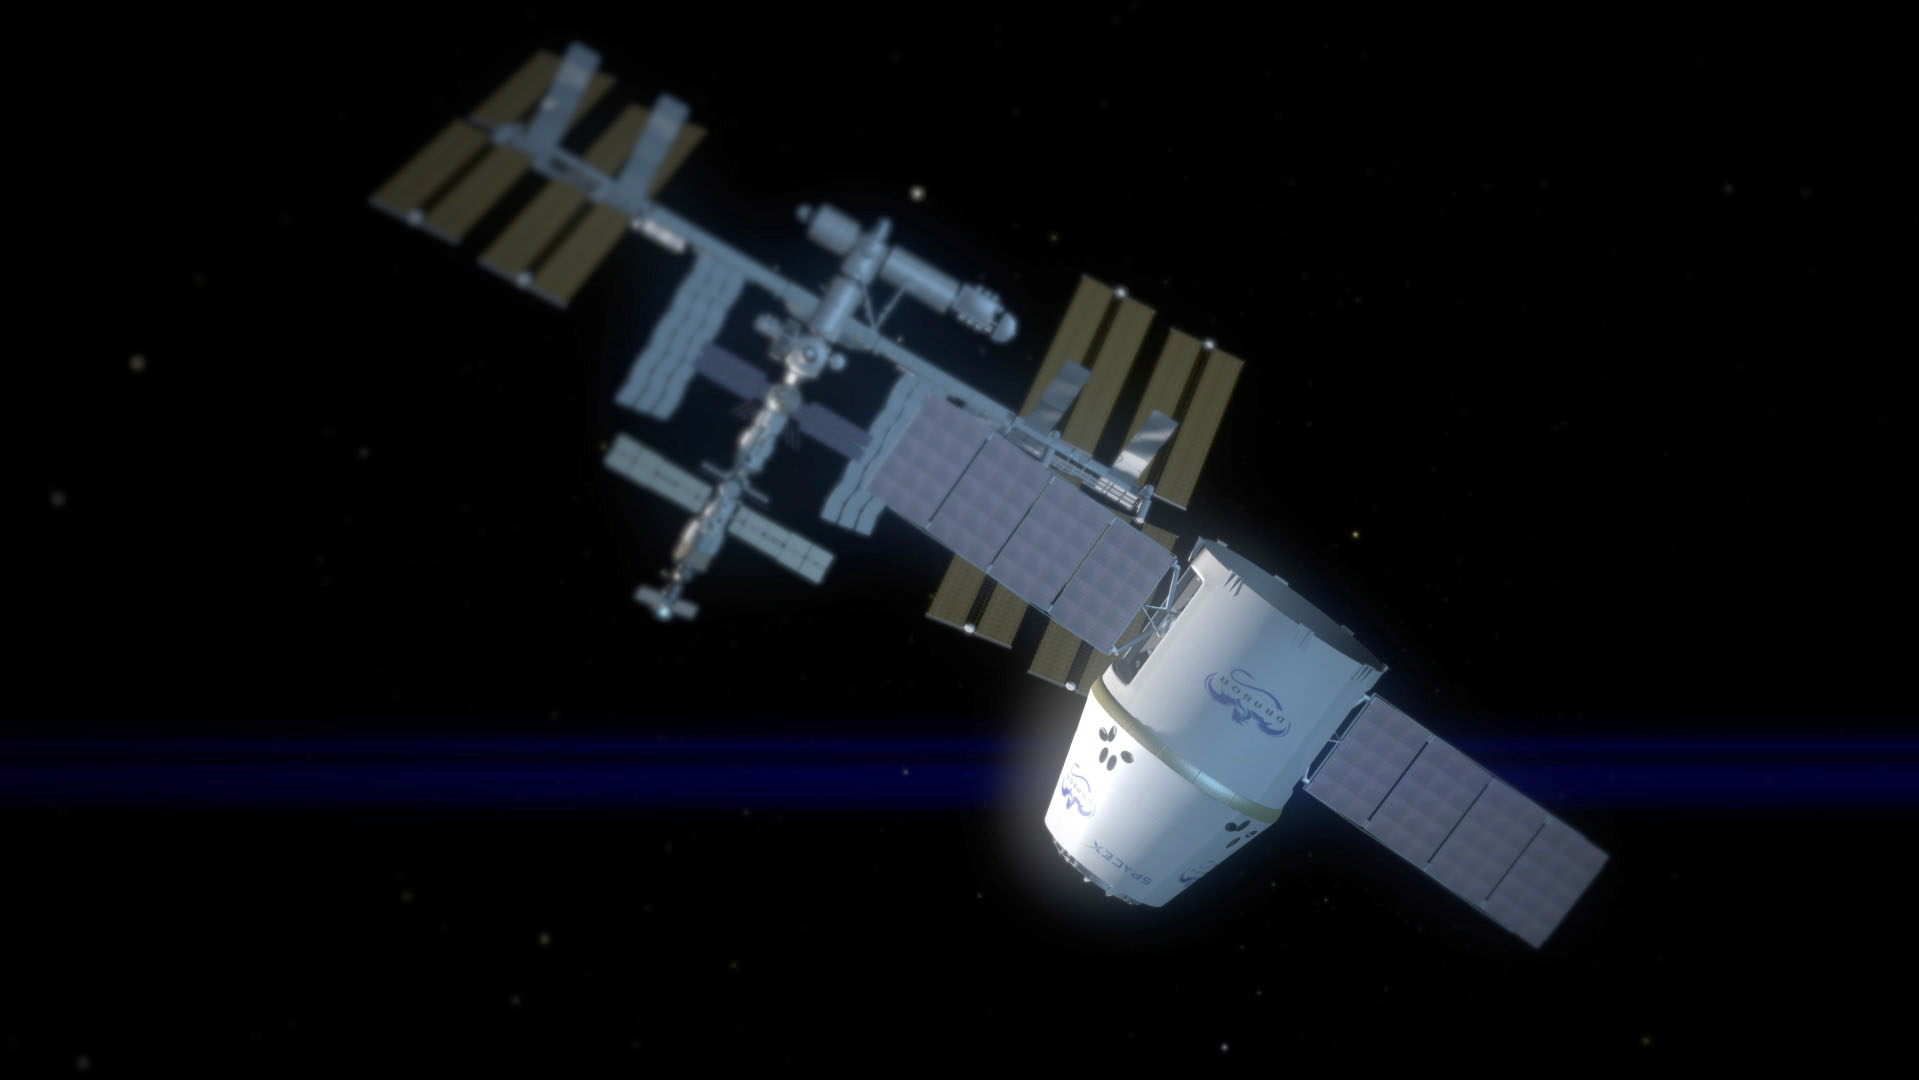 NASA announces Feb. 7 launch for 1st SpaceX Docking to ISS